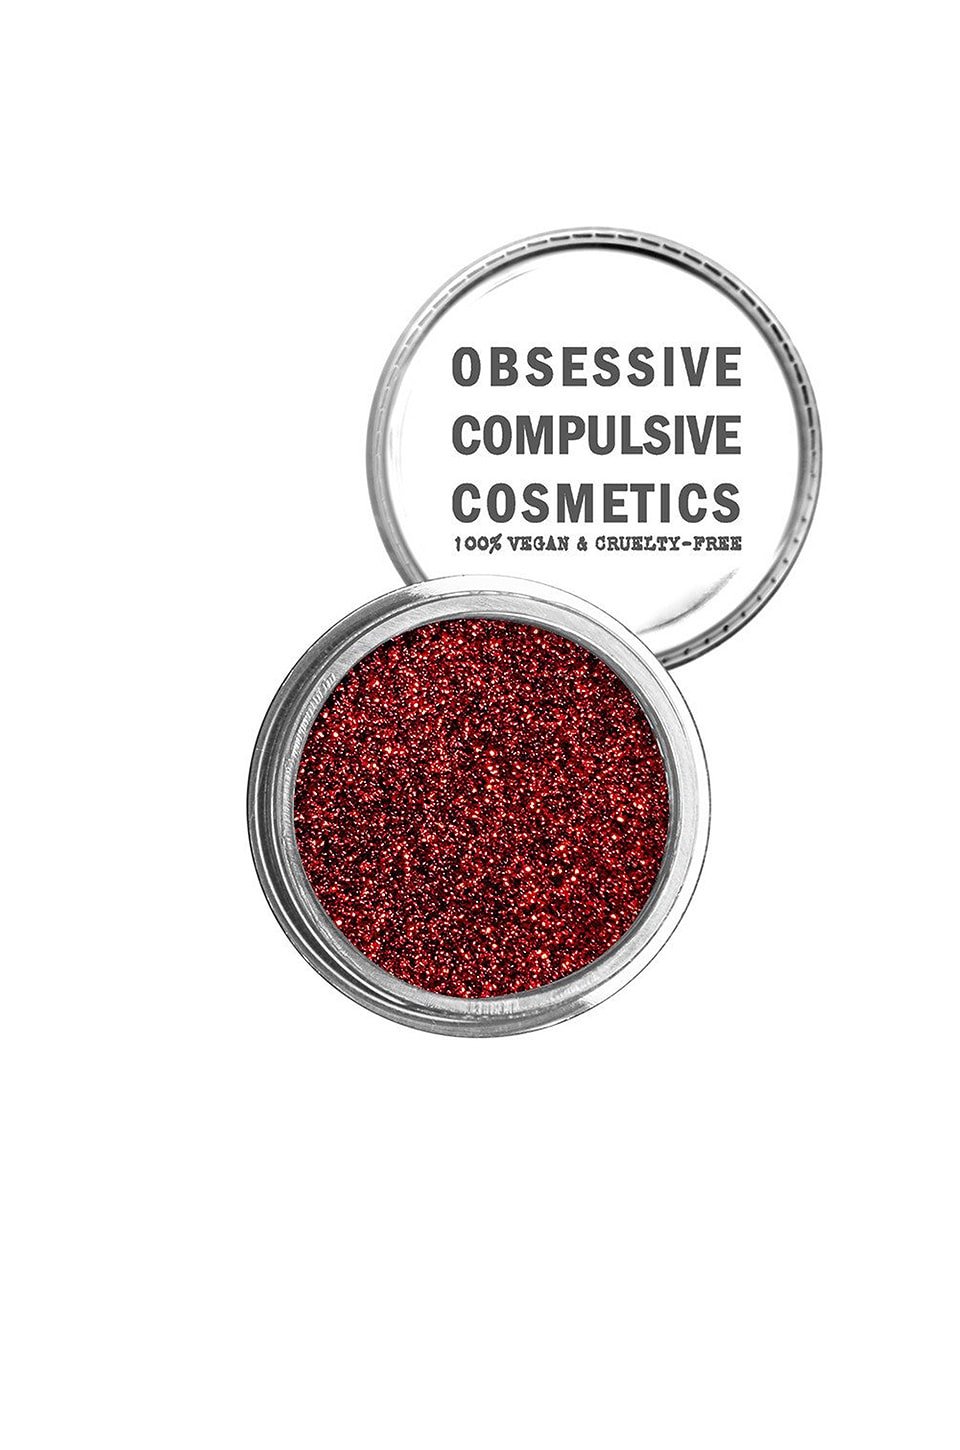 Obsessive Compulsive Cosmetics Cosmetic Glitter in Red